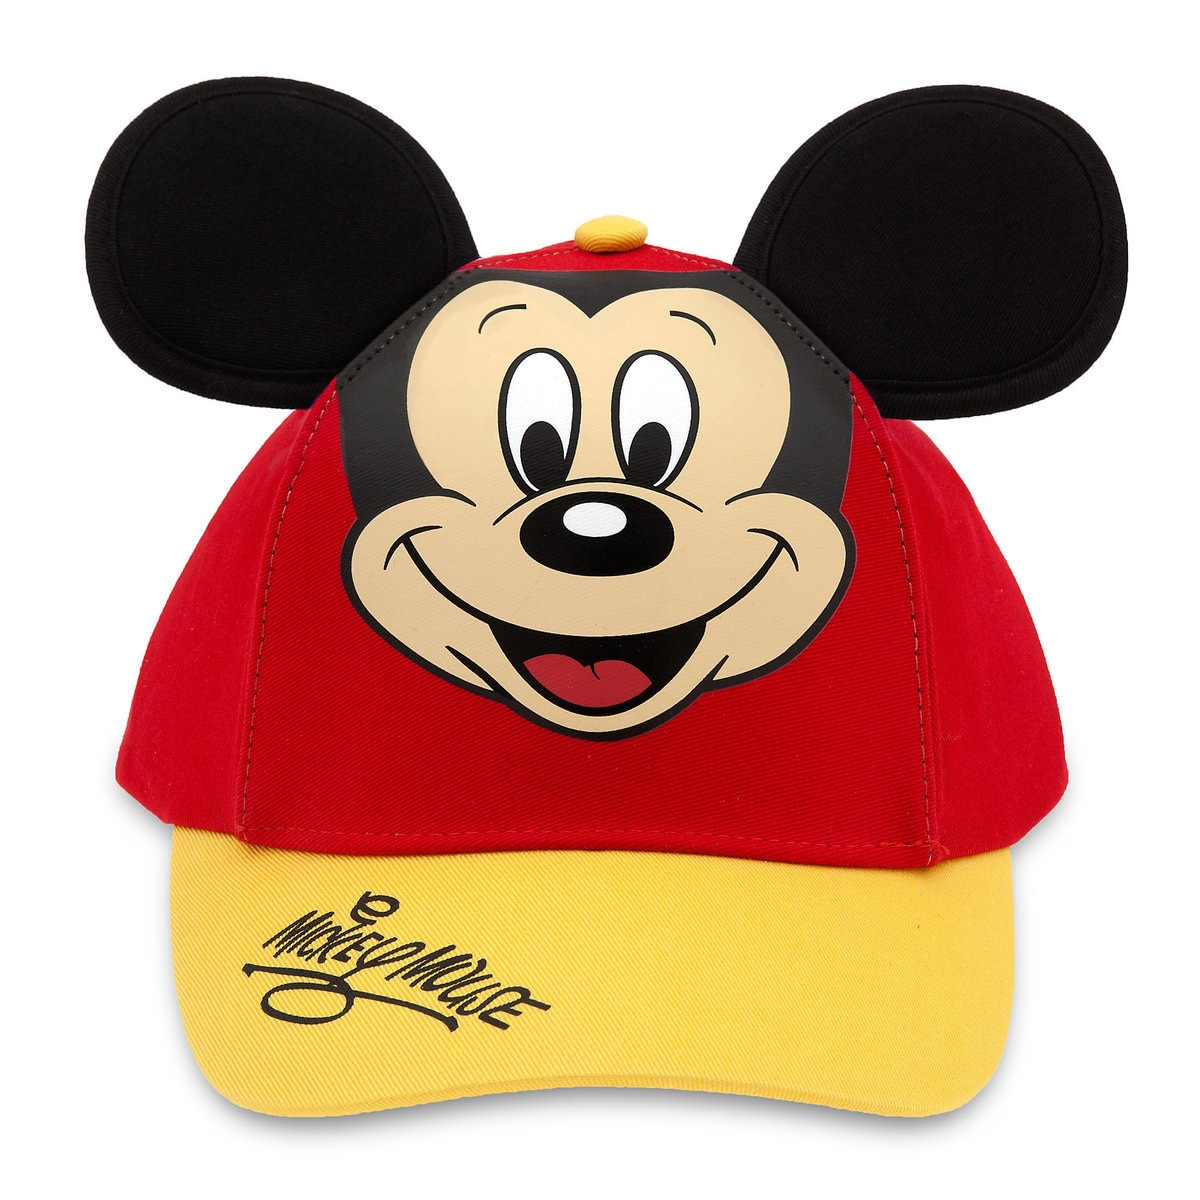 99c63828 Mickey Mouse Baseball Cap for Kids - Red/Gold